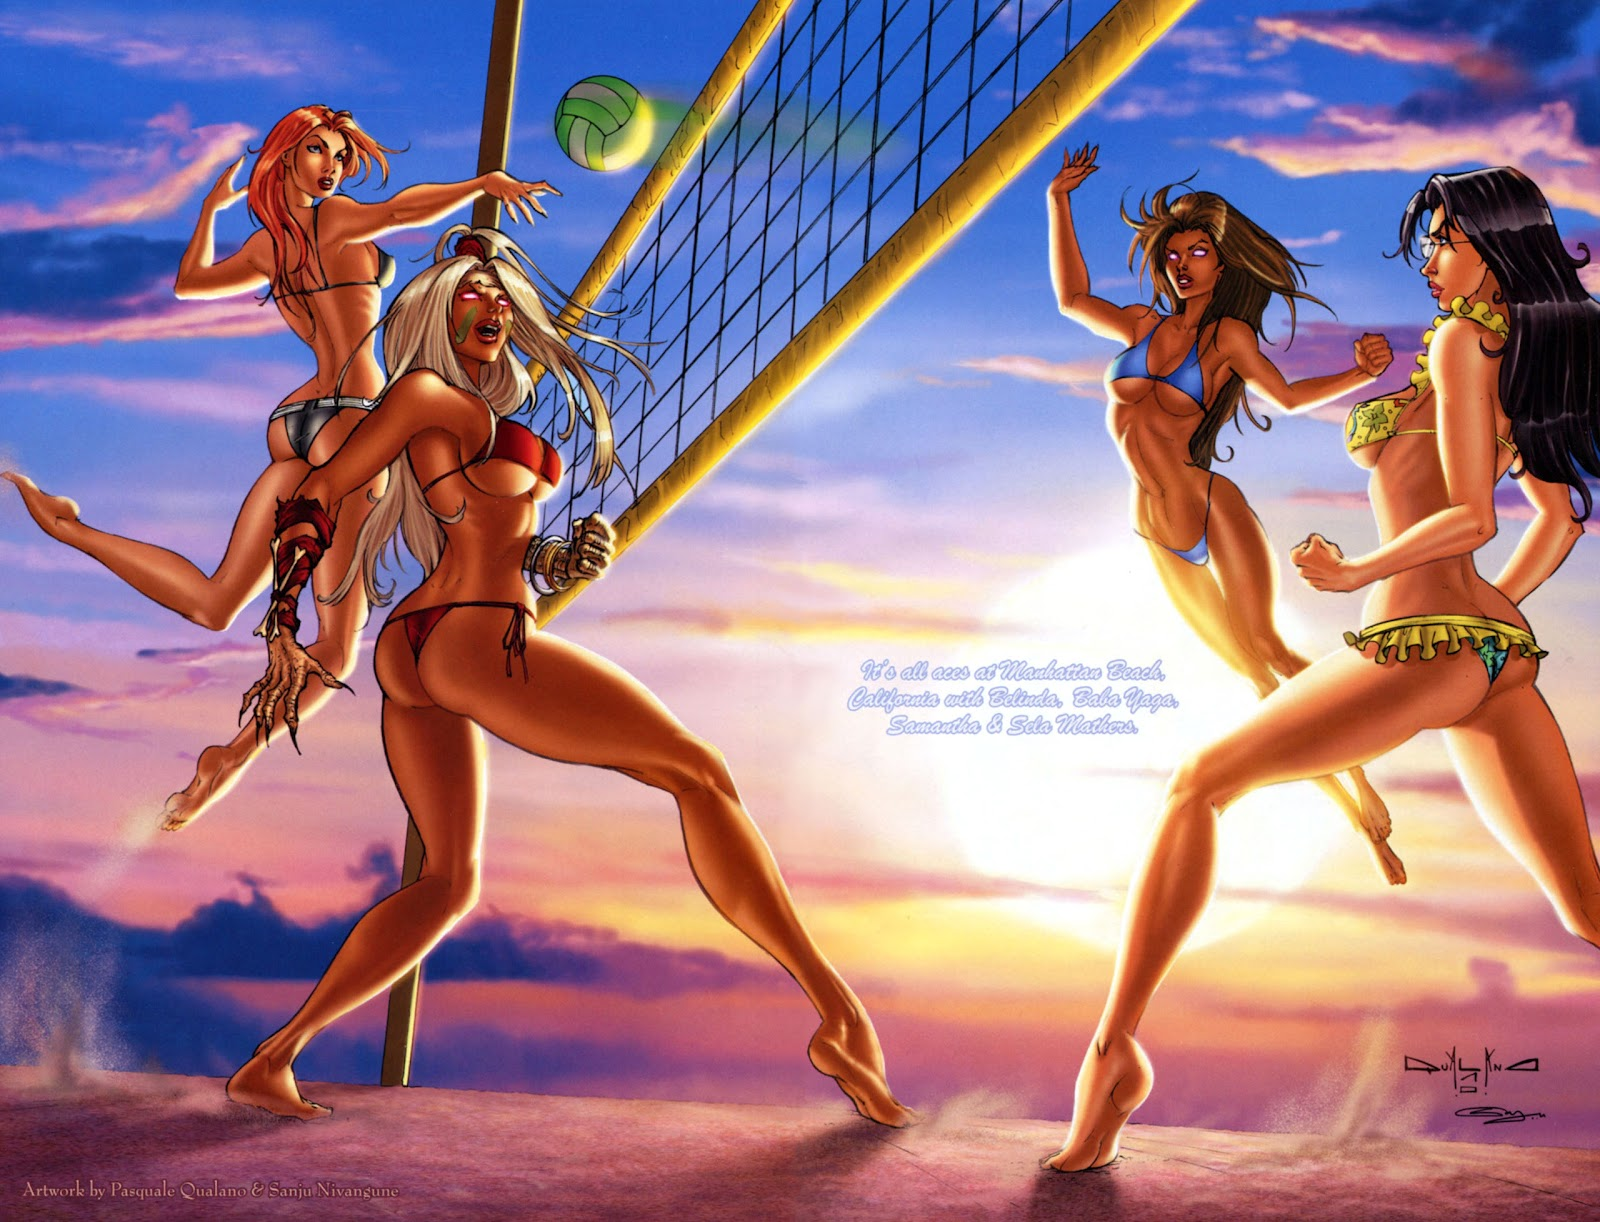 Grimm Fairy Tales: Swimsuit Edition Full #1 - English 12